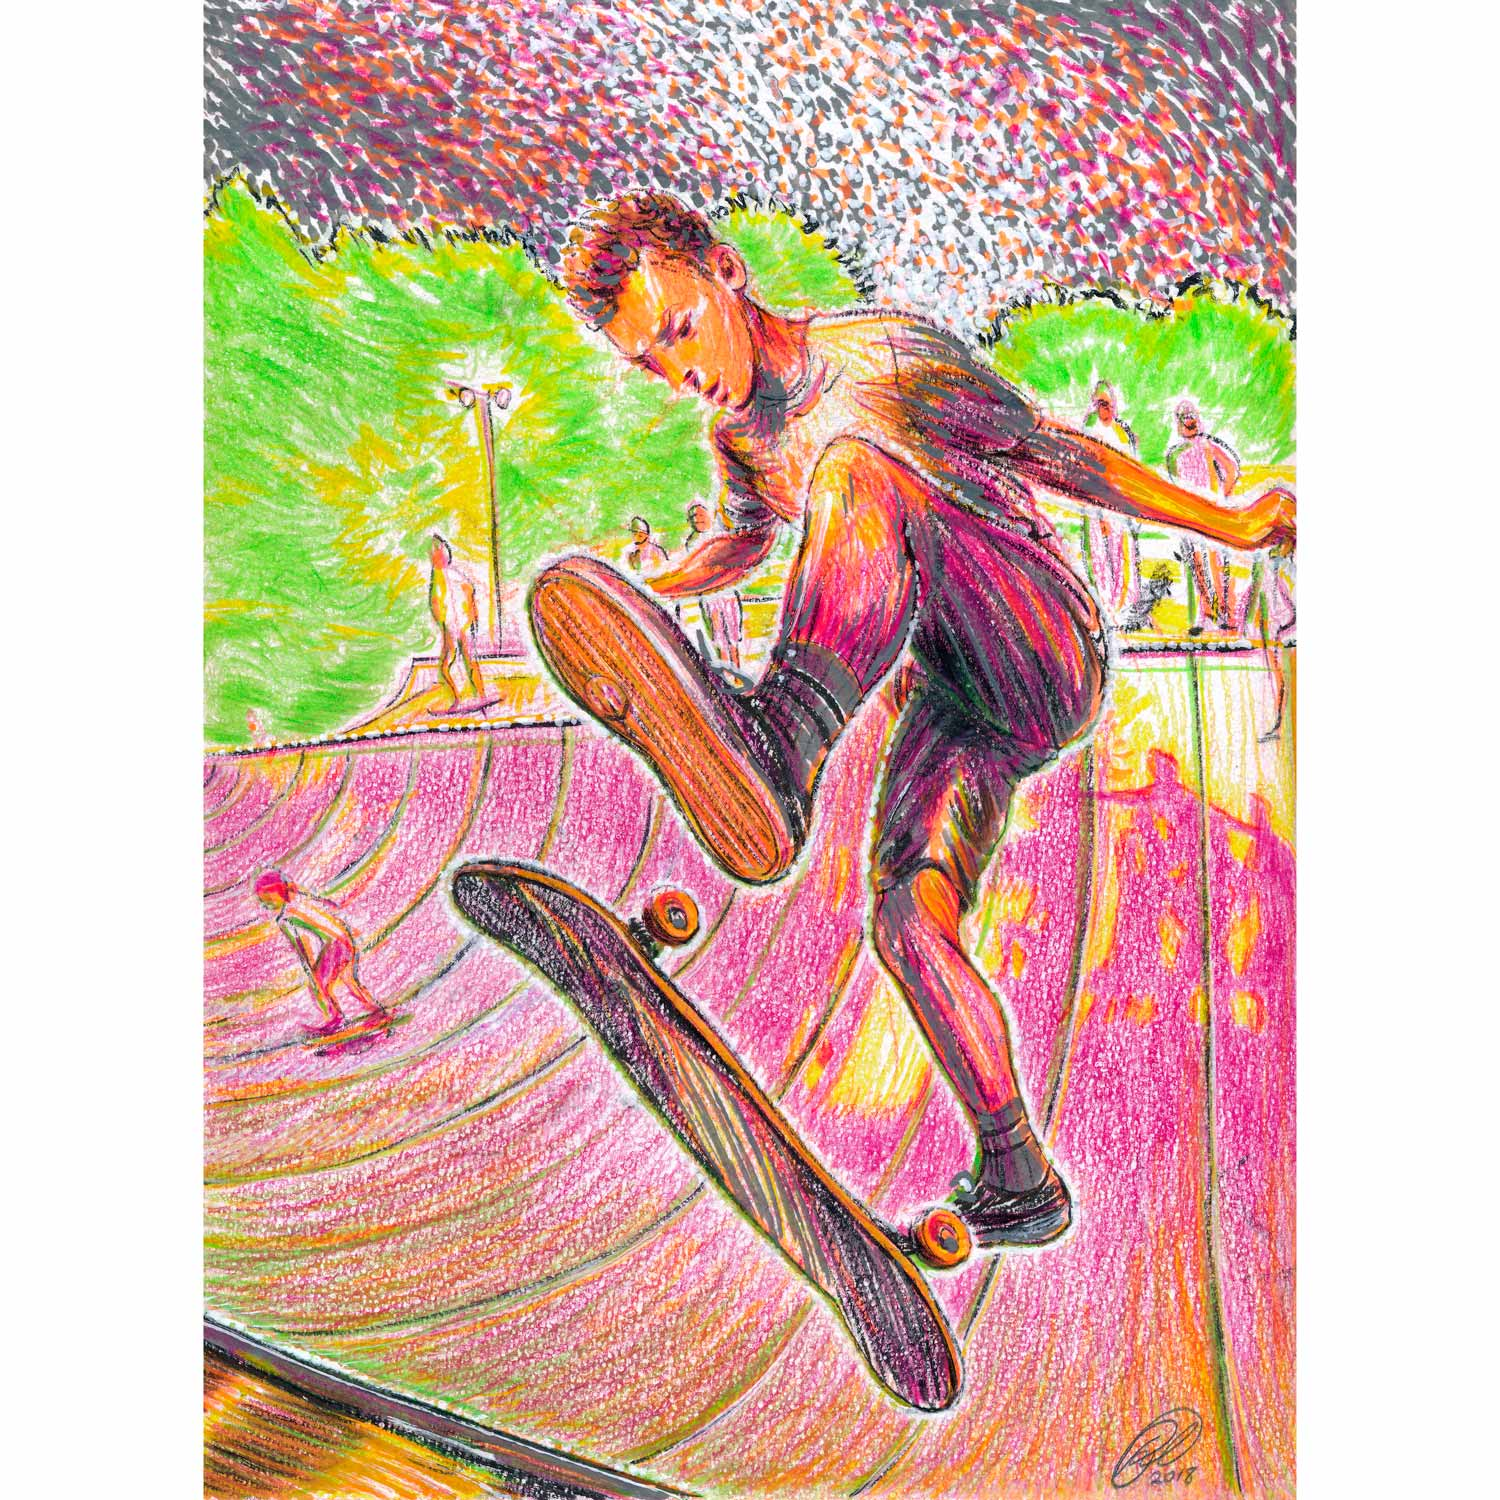 """Tony Zane at Kona Skate Park  2018  Colored pencil, paint marker, and ink on cotton rag paper  9"""" x 12""""  Reference: photo by Stefan Judge, Concrete Wave Magazine - Fall 2017"""